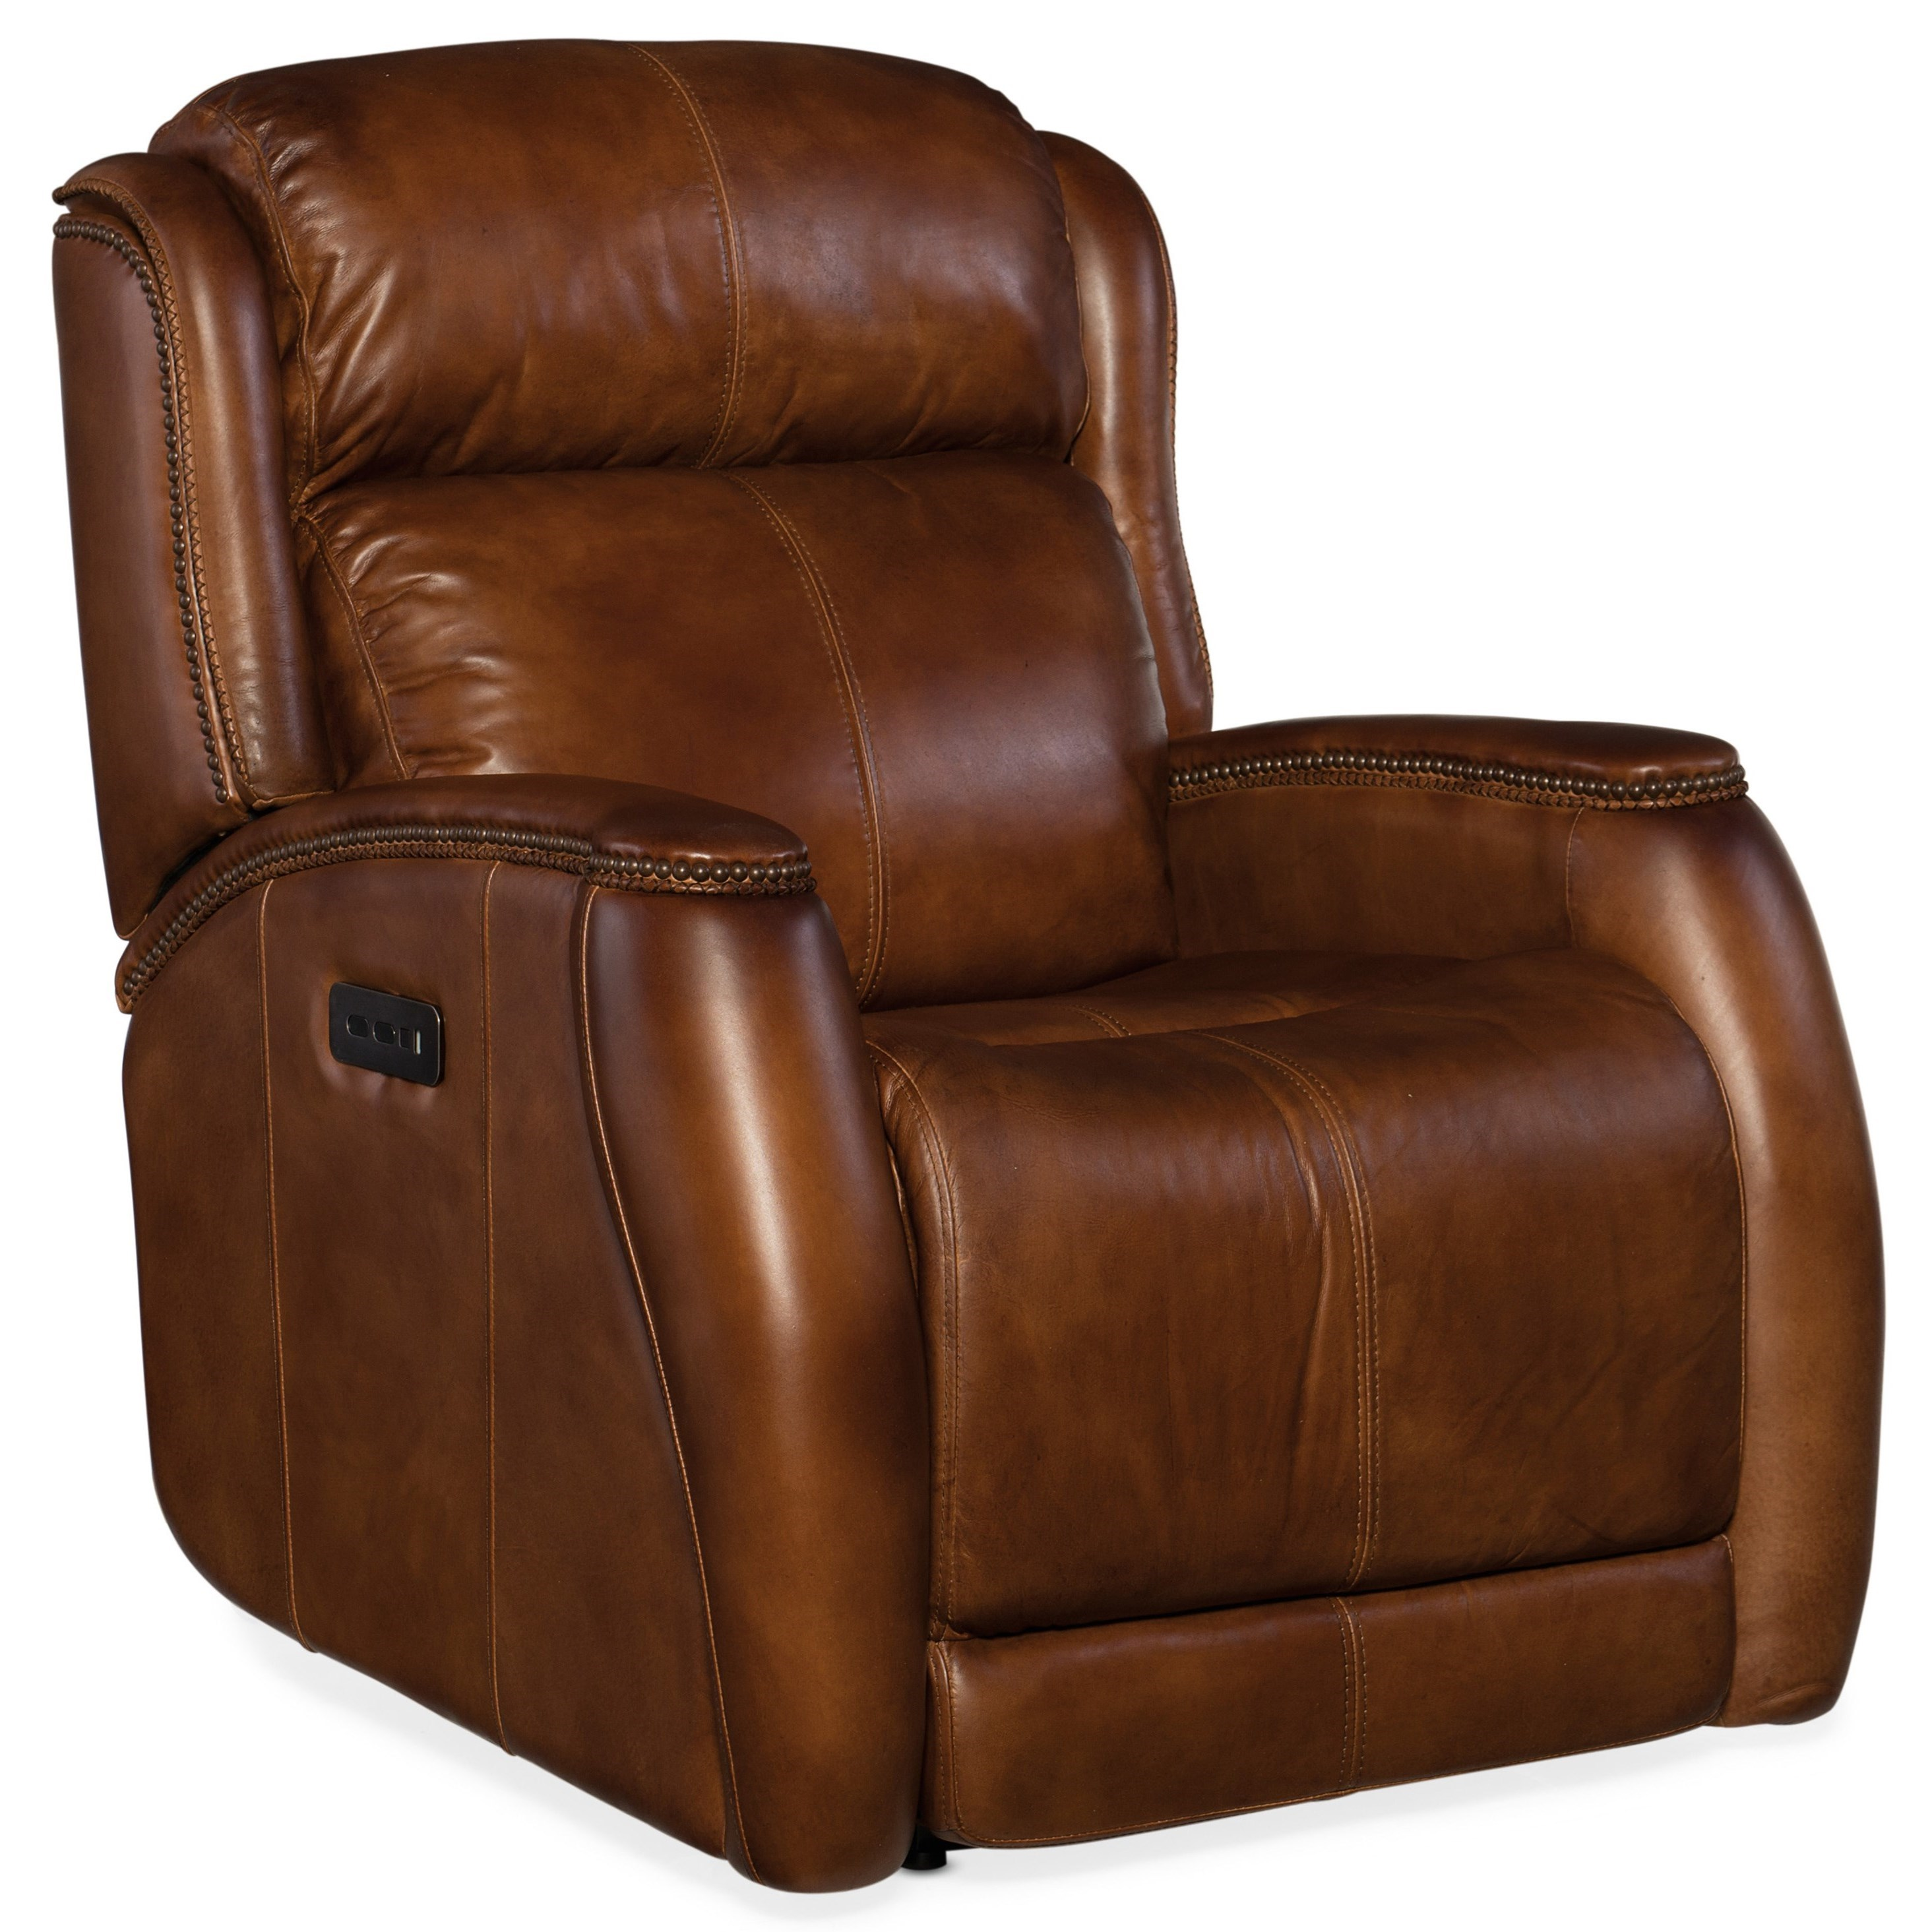 Emerson Power Recliner with Power Headrest at Williams & Kay